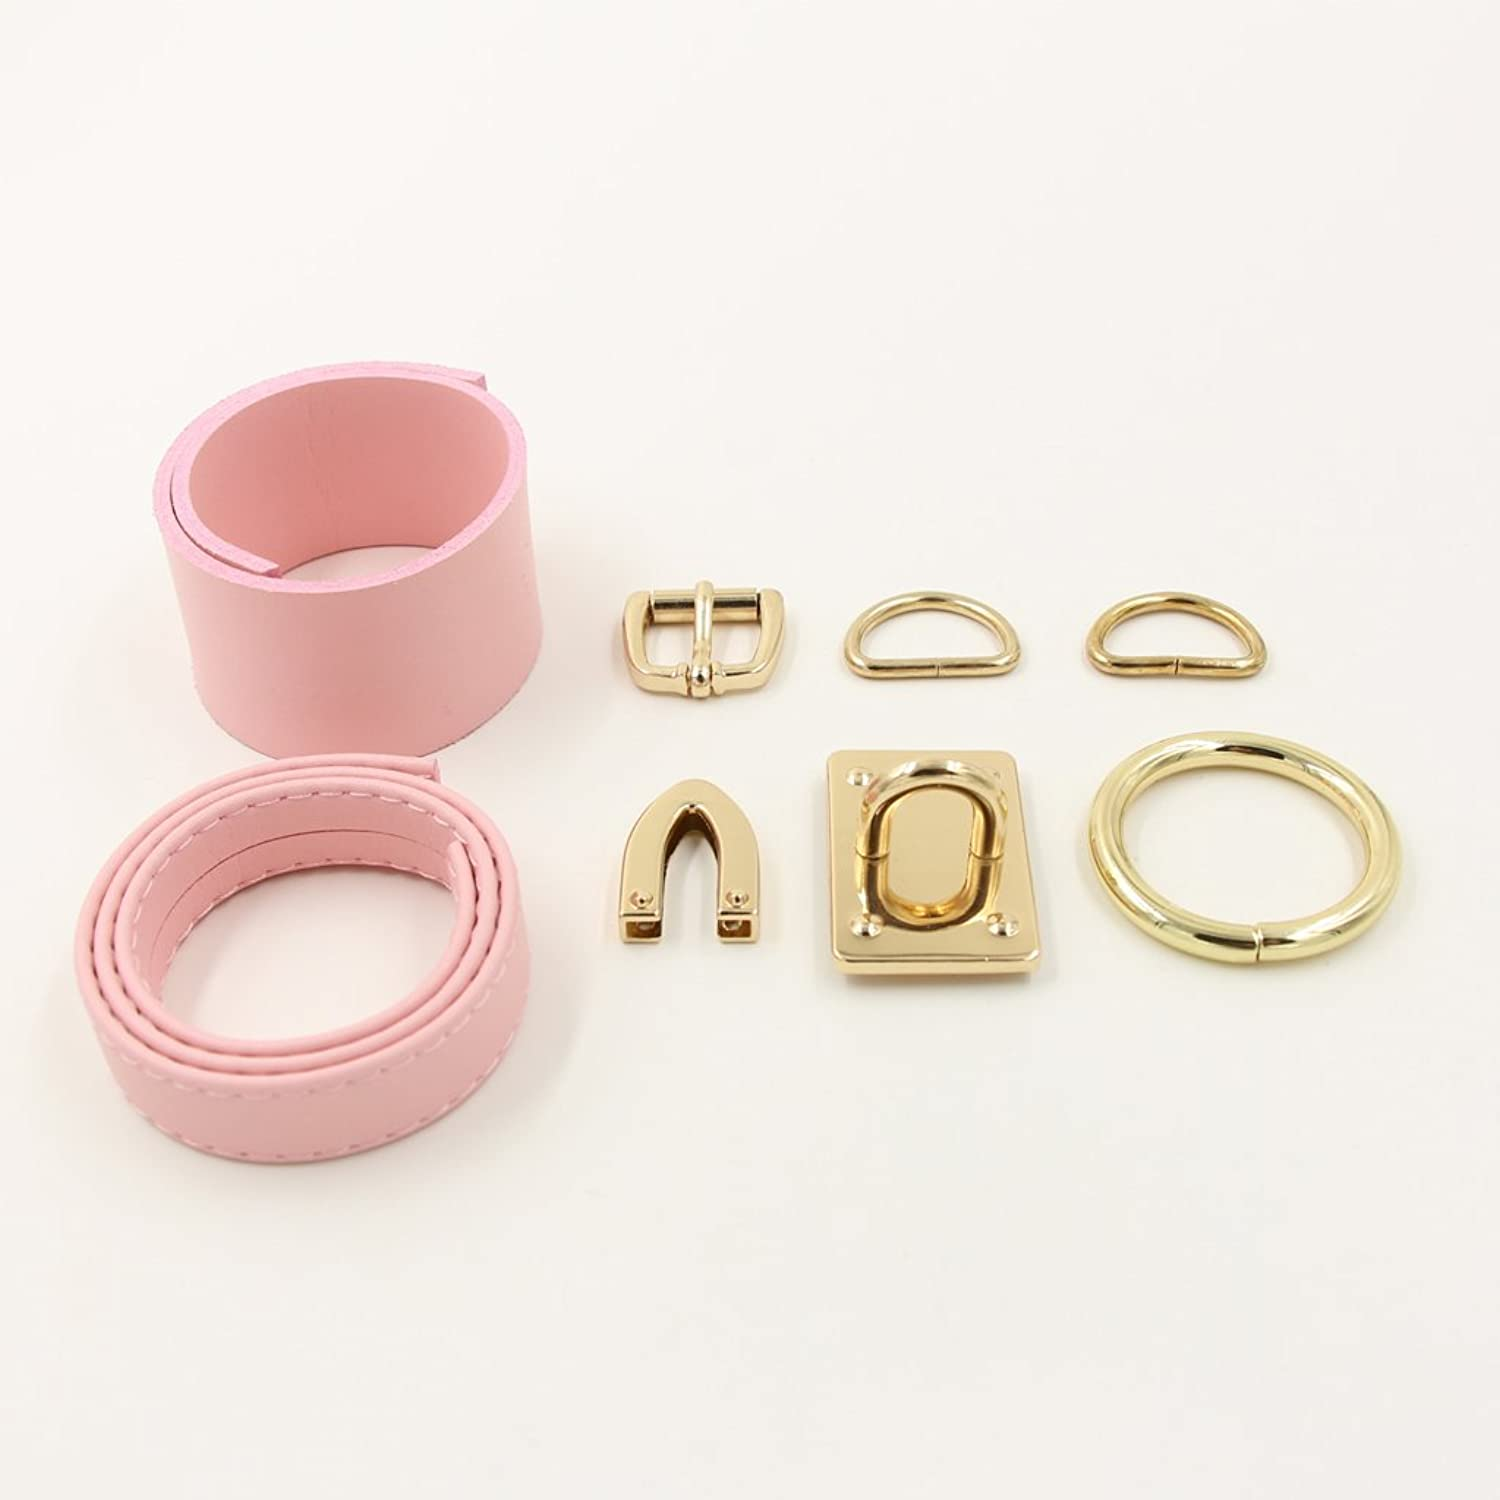 Amazon Handmade O Ring Faux Leather Choker Collar Pink & gold